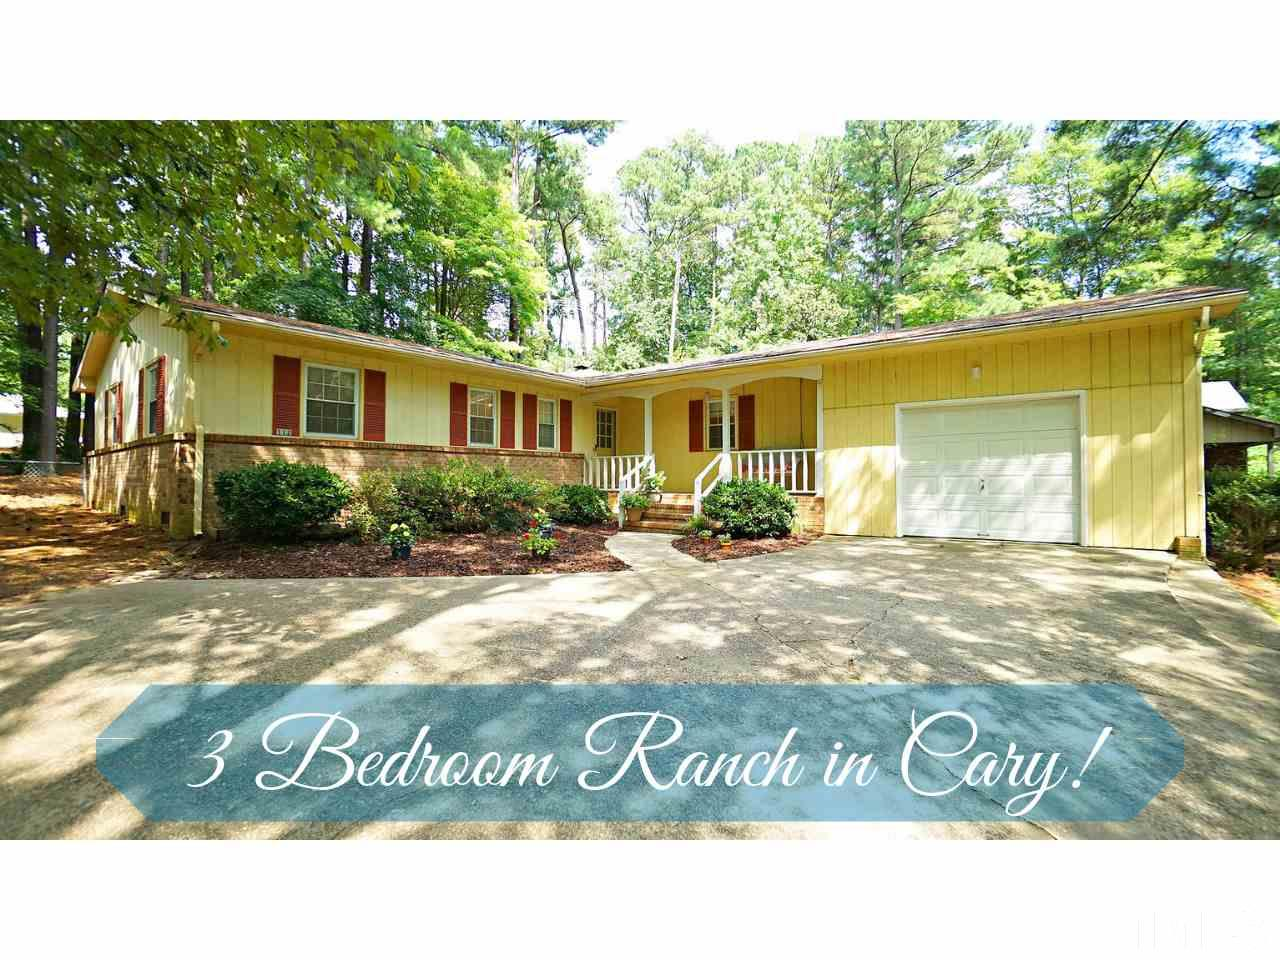 Photo for 112 Sycamore Street, Cary, NC 27513-4228 (MLS # 2270475)